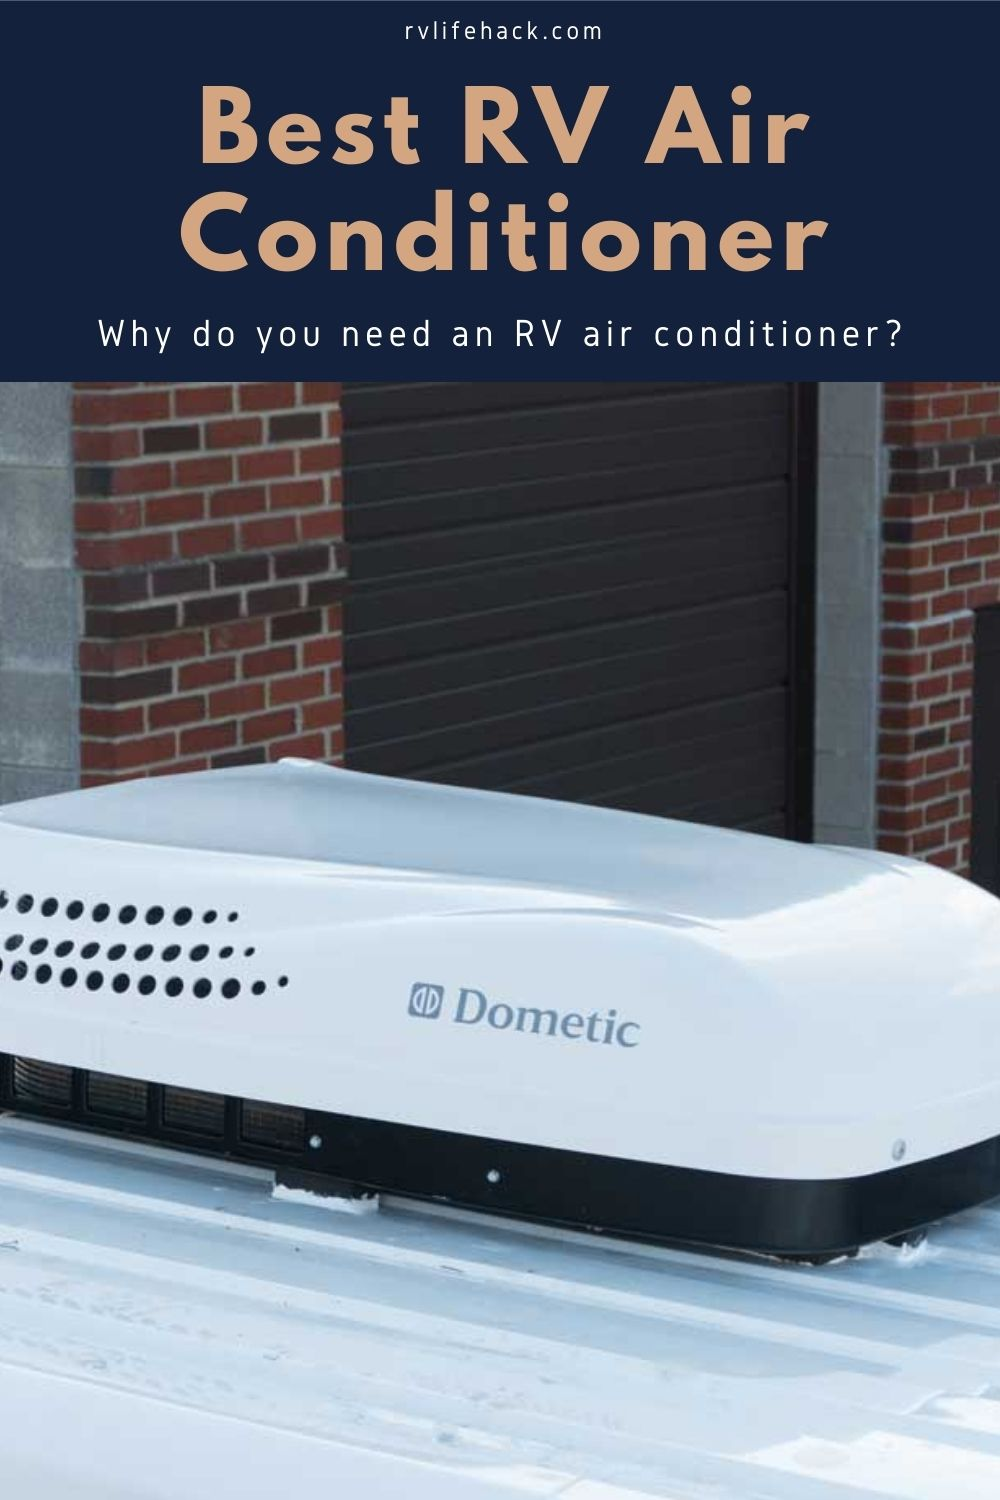 Best RV Air Conditioner (Why do you need an RV Air Conditioner?)